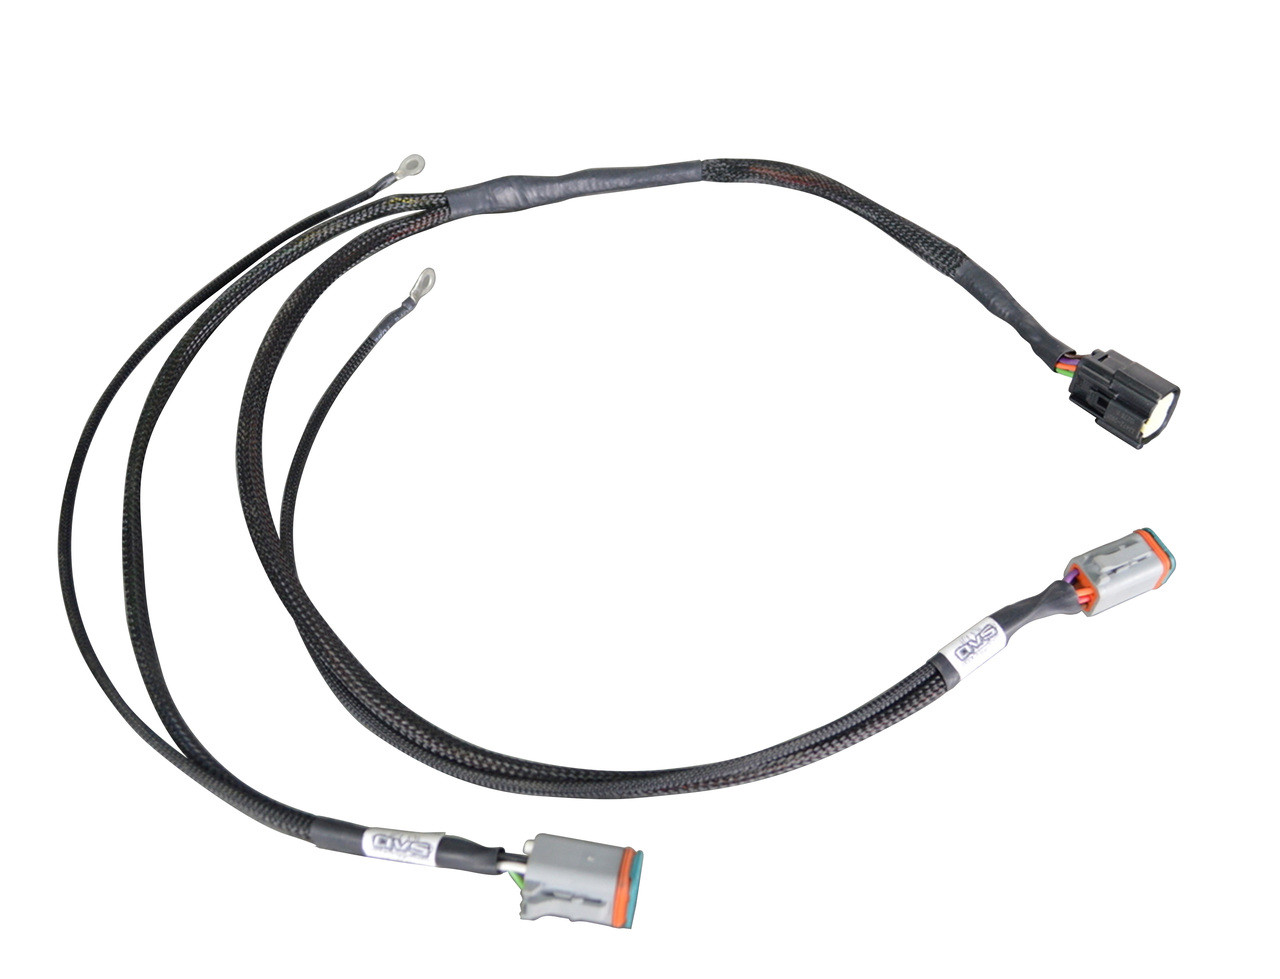 medium resolution of avs valve wiring harness for accuair endo vt tank to e level switchspeed